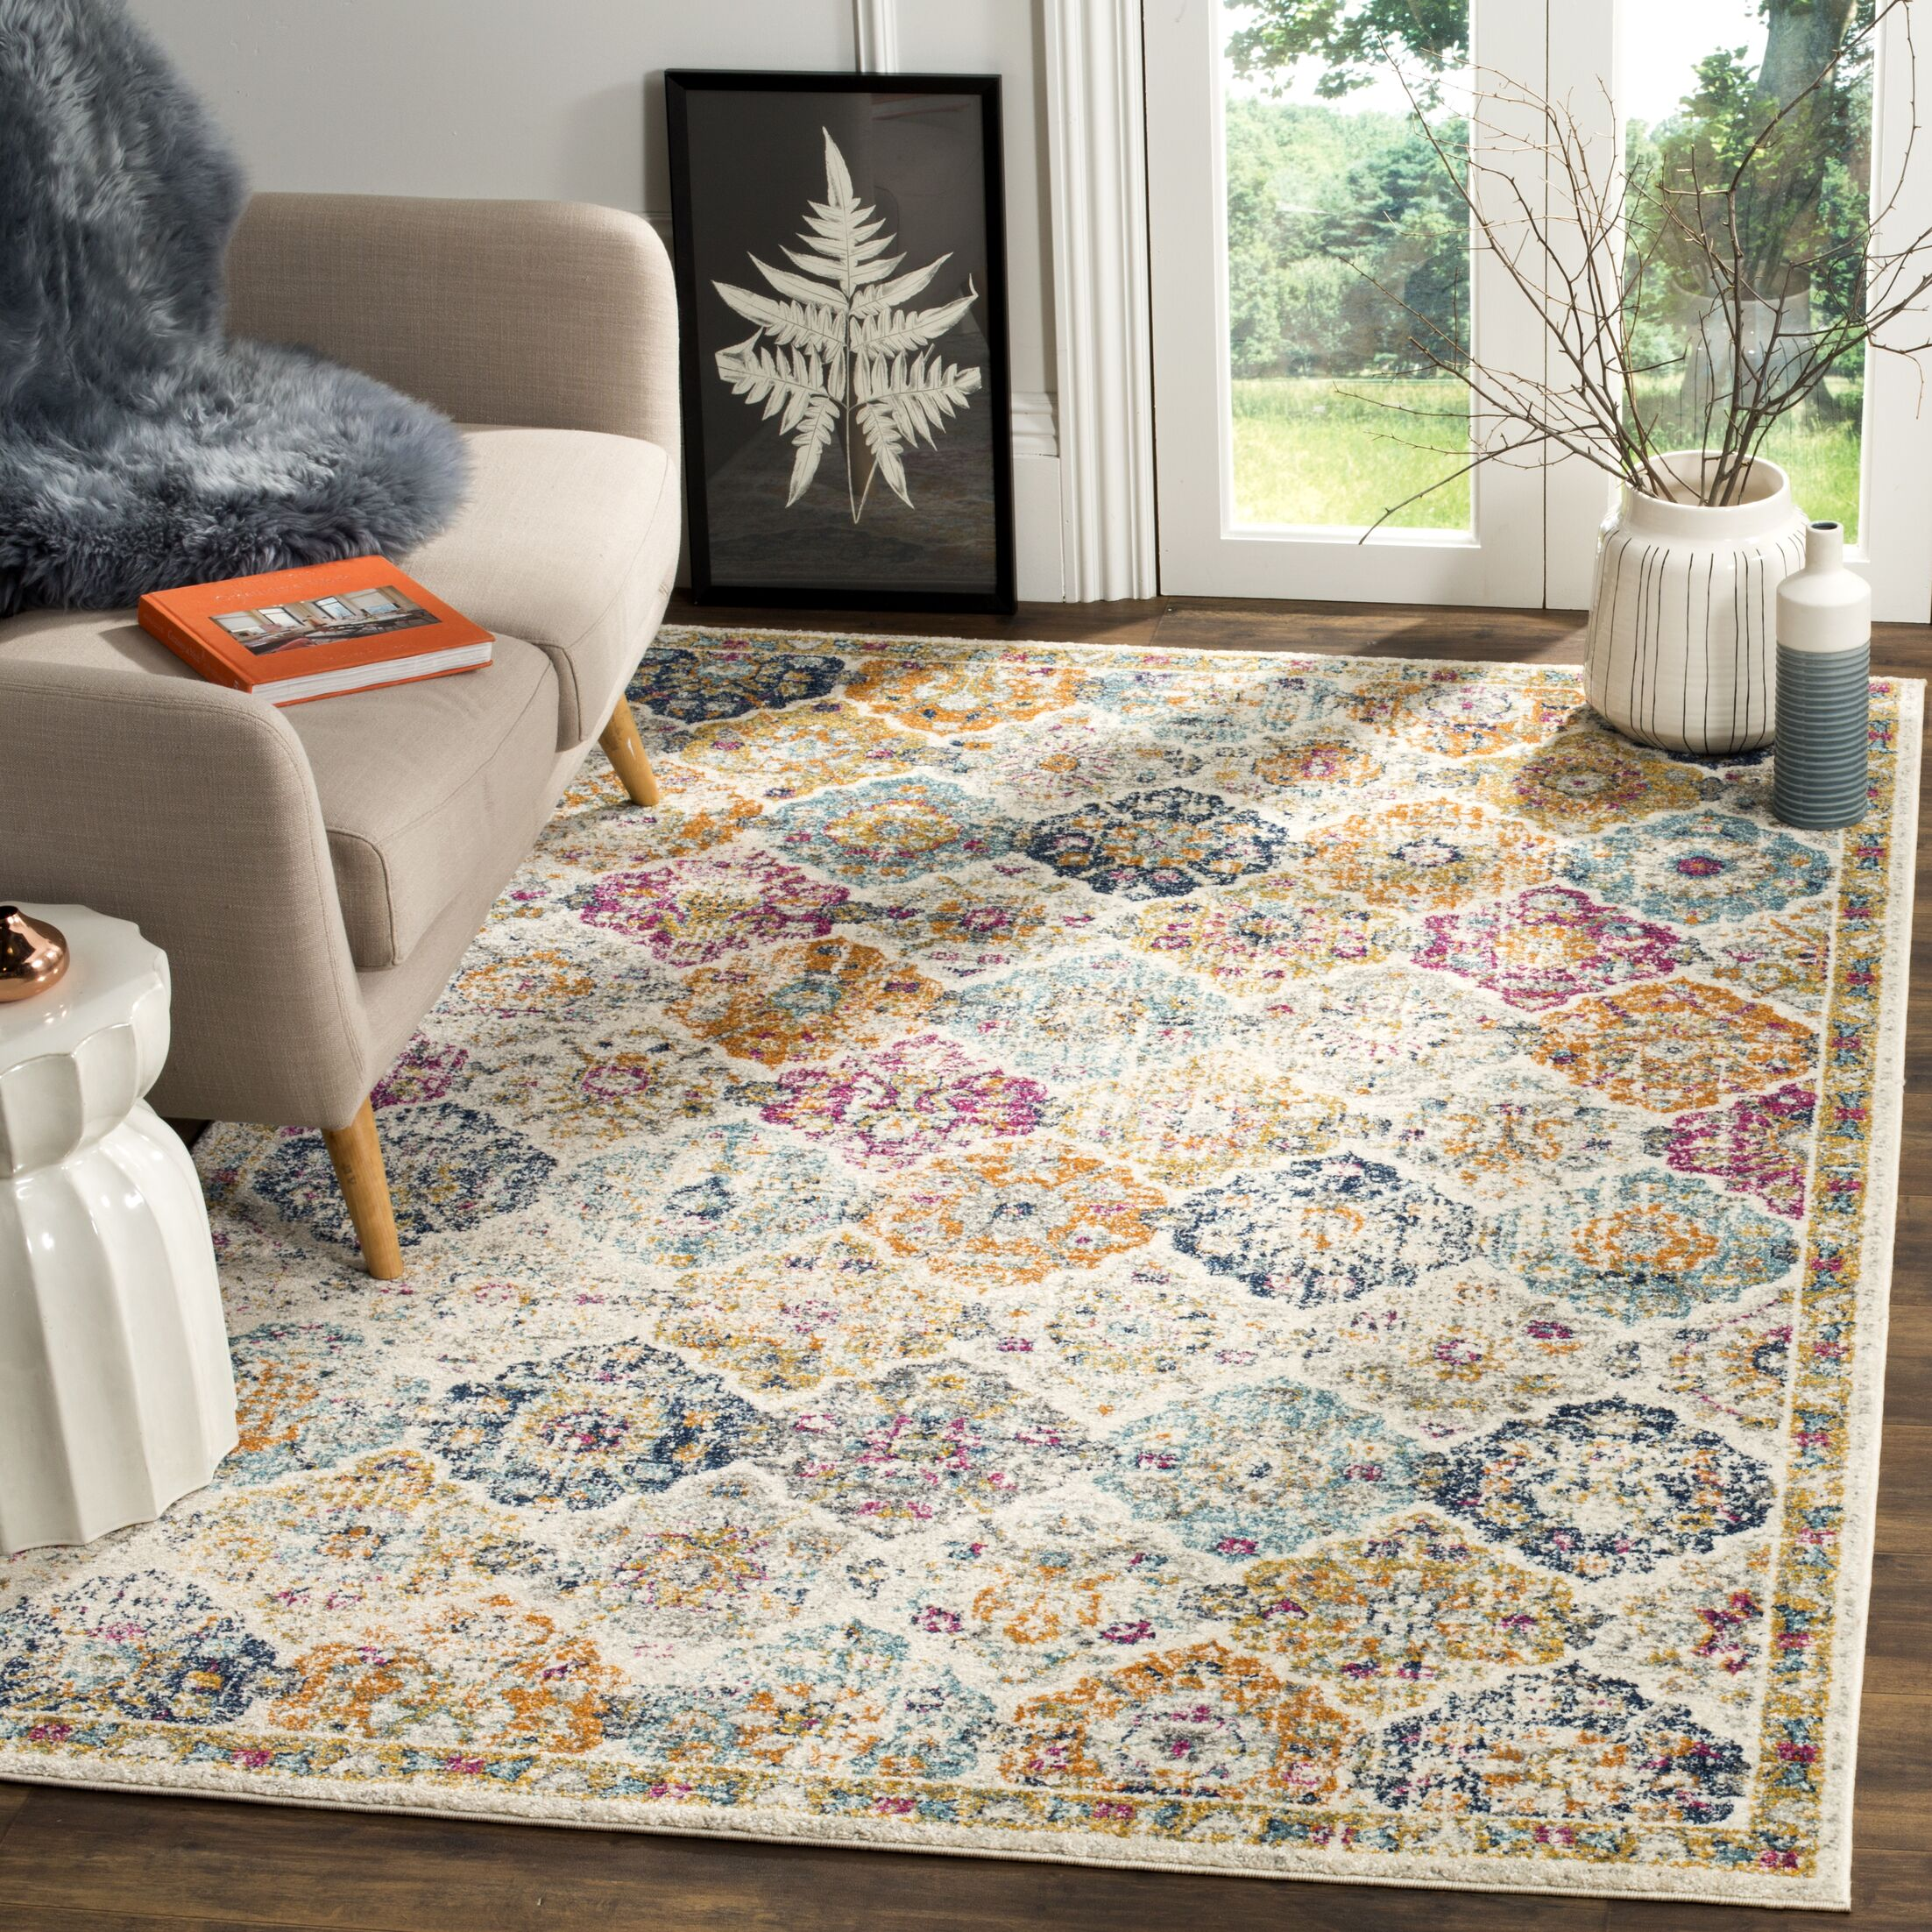 Grieve Cream Area Rug Rug Size: Rectangle 10' x 14'